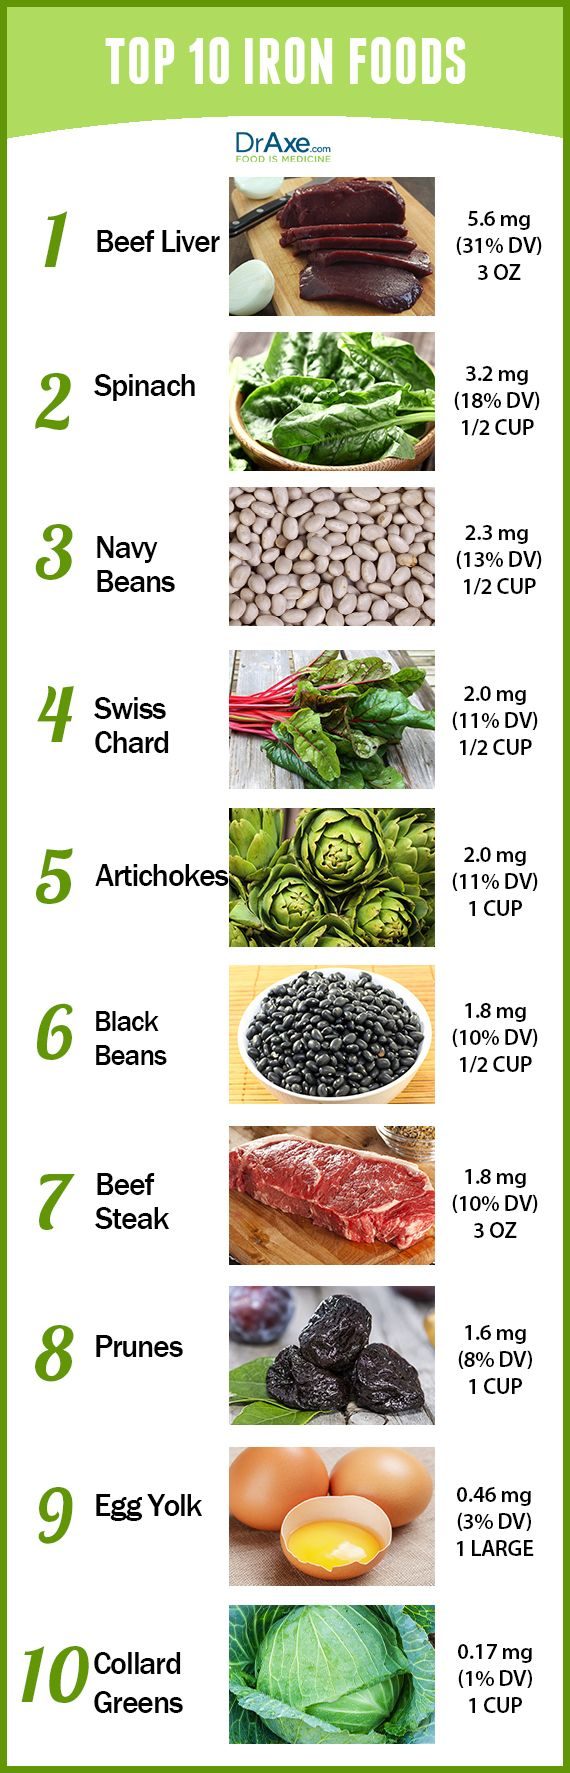 Top 10 iron rich foods iron rich foods irons and iron top 10 iron rich foods forumfinder Image collections